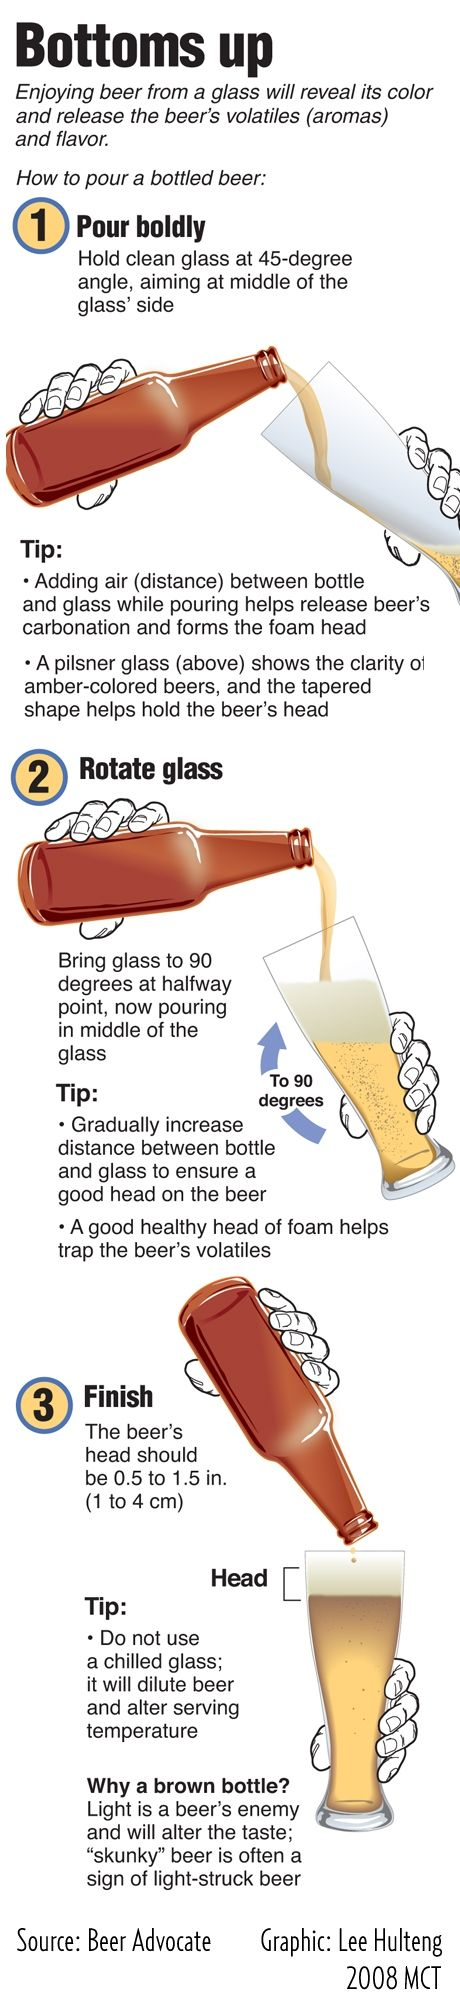 How to pour a beer like a pro!  So don't need a poster how to do this...my Dad was a better teacher :)